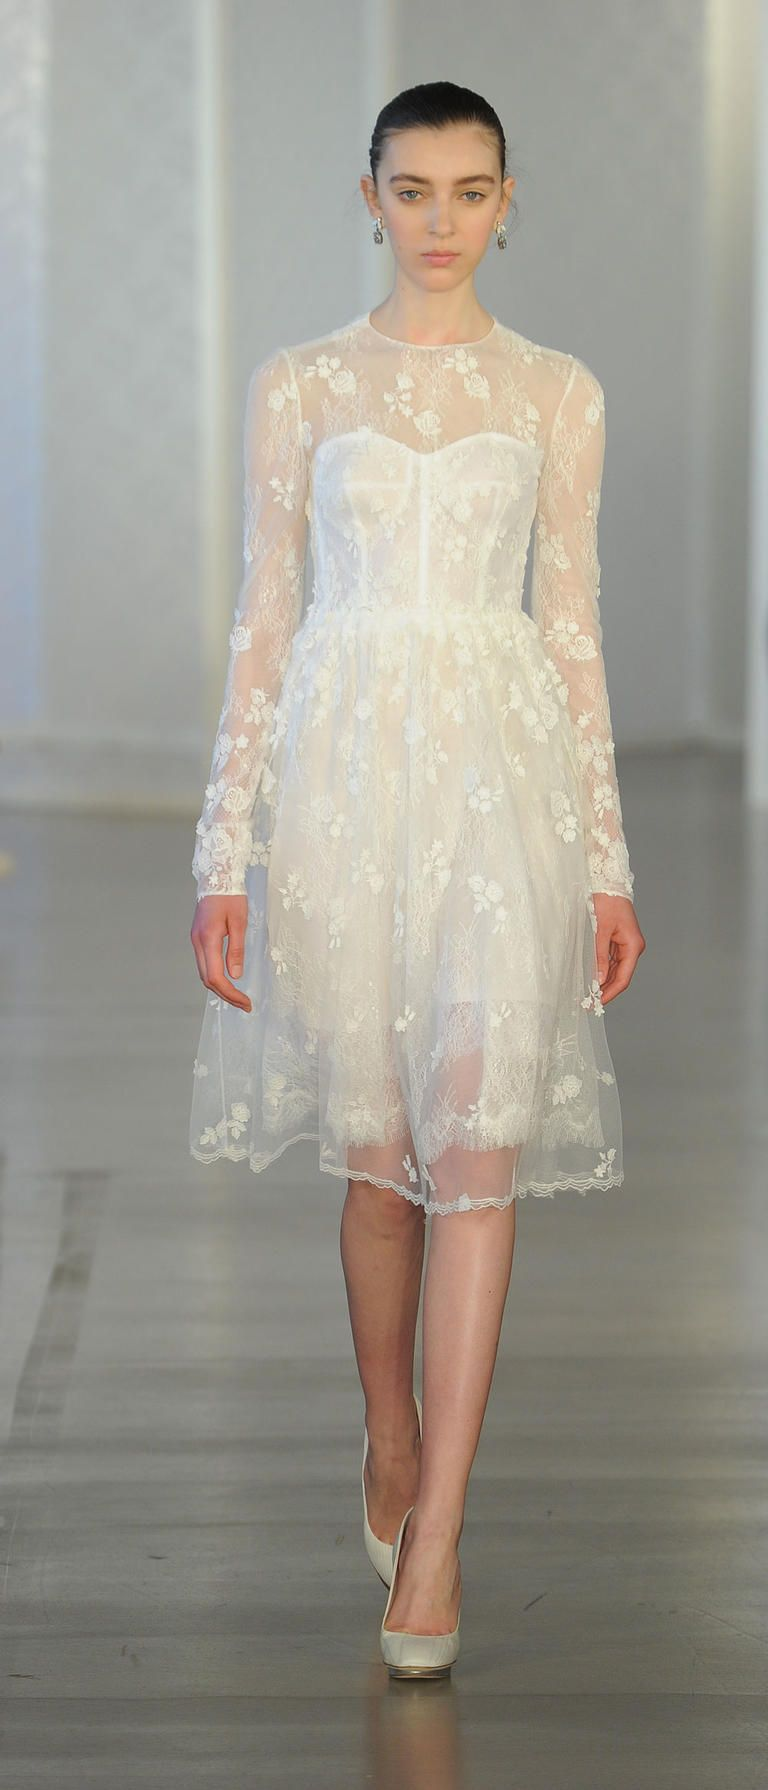 15 Wedding Dresses Perfect For An Elopement 11 Short Dress With Sheer